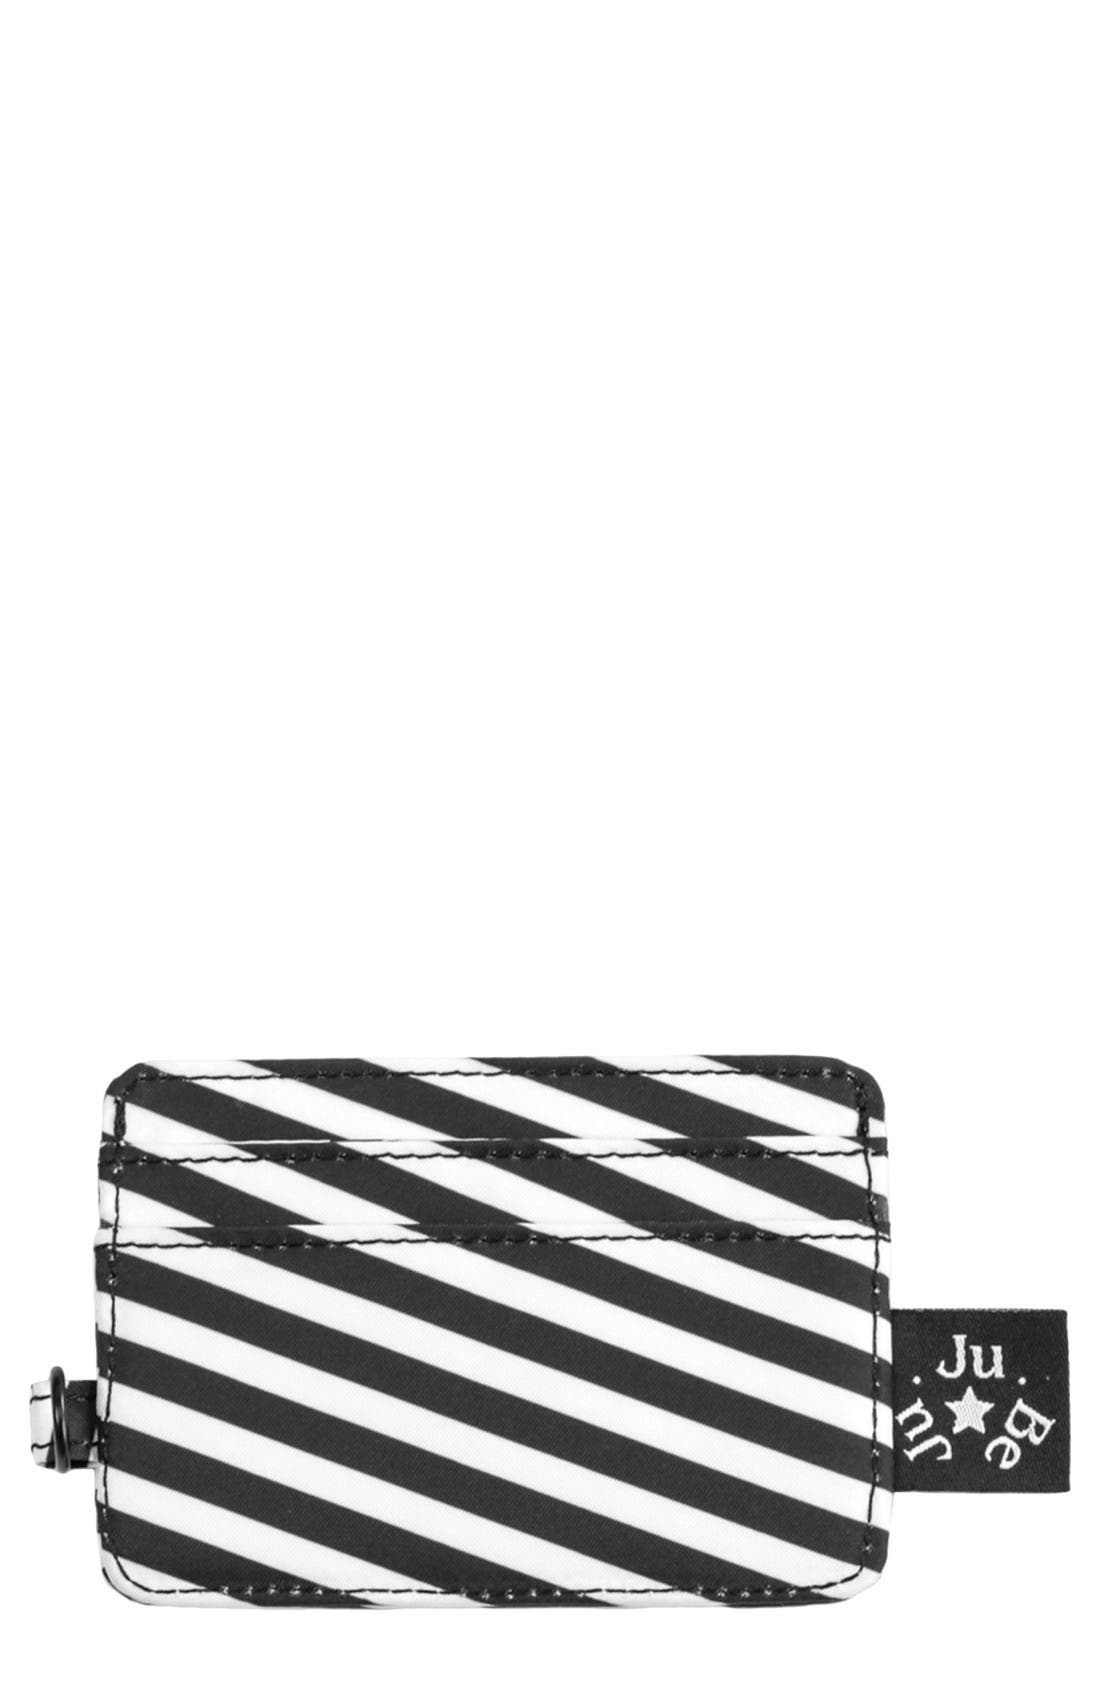 Alternate Image 1 Selected - Ju-Ju-Be Legacy Be Charged Card Case